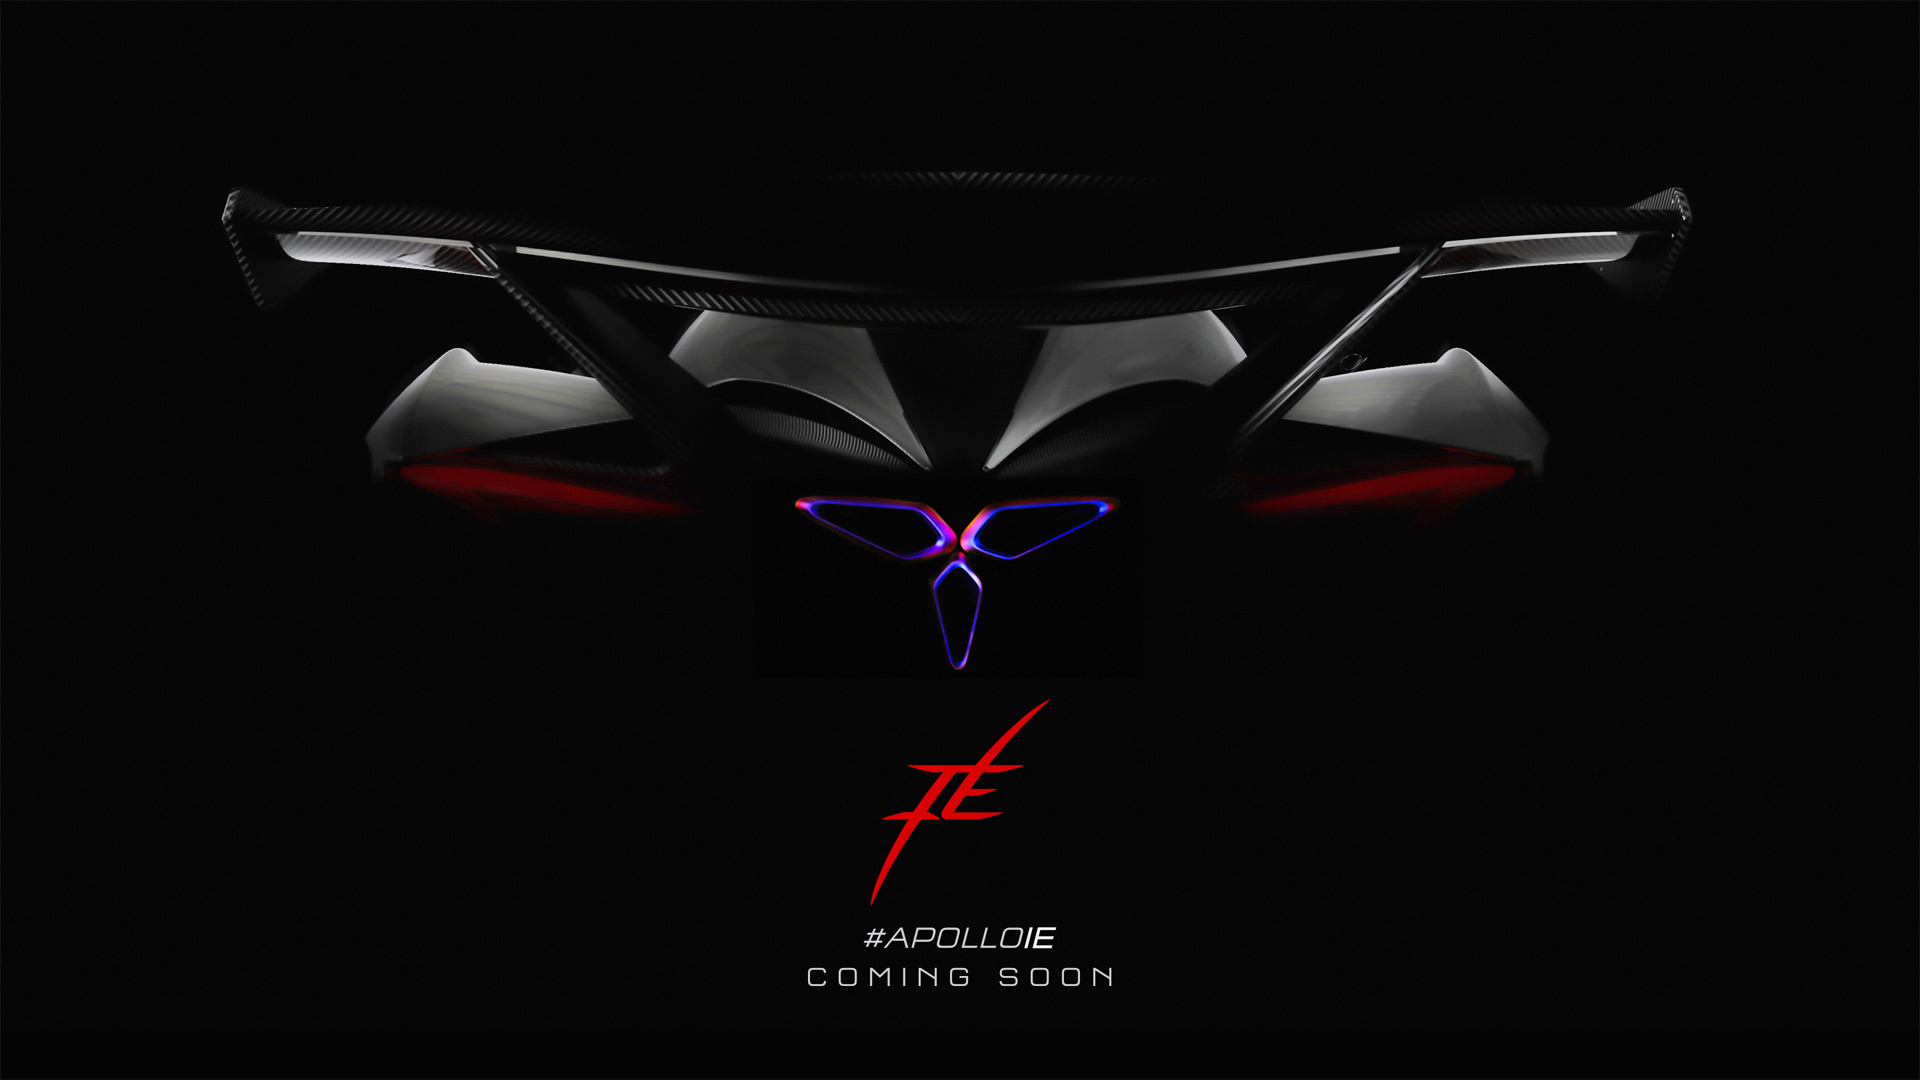 Cool Old Cars Wallpapers Apollo Ie Is The Intensa Emozione